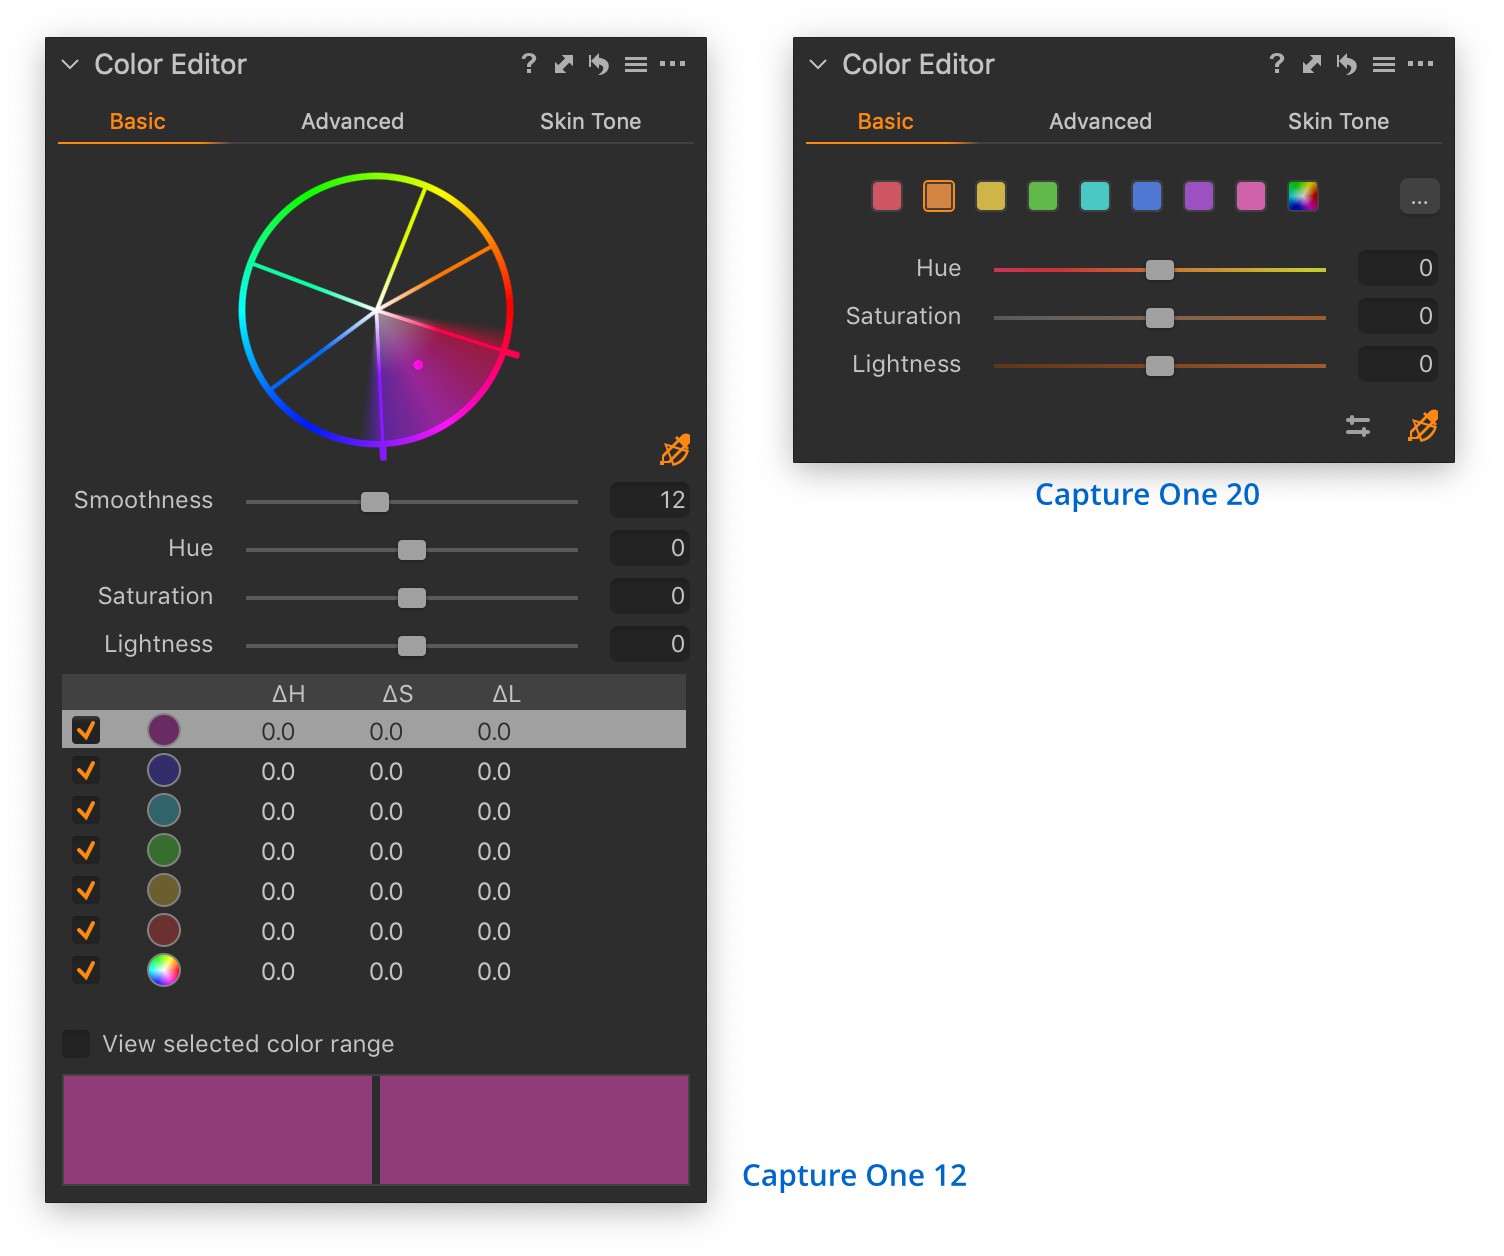 color editor tool, comparison capture one 12 and 20